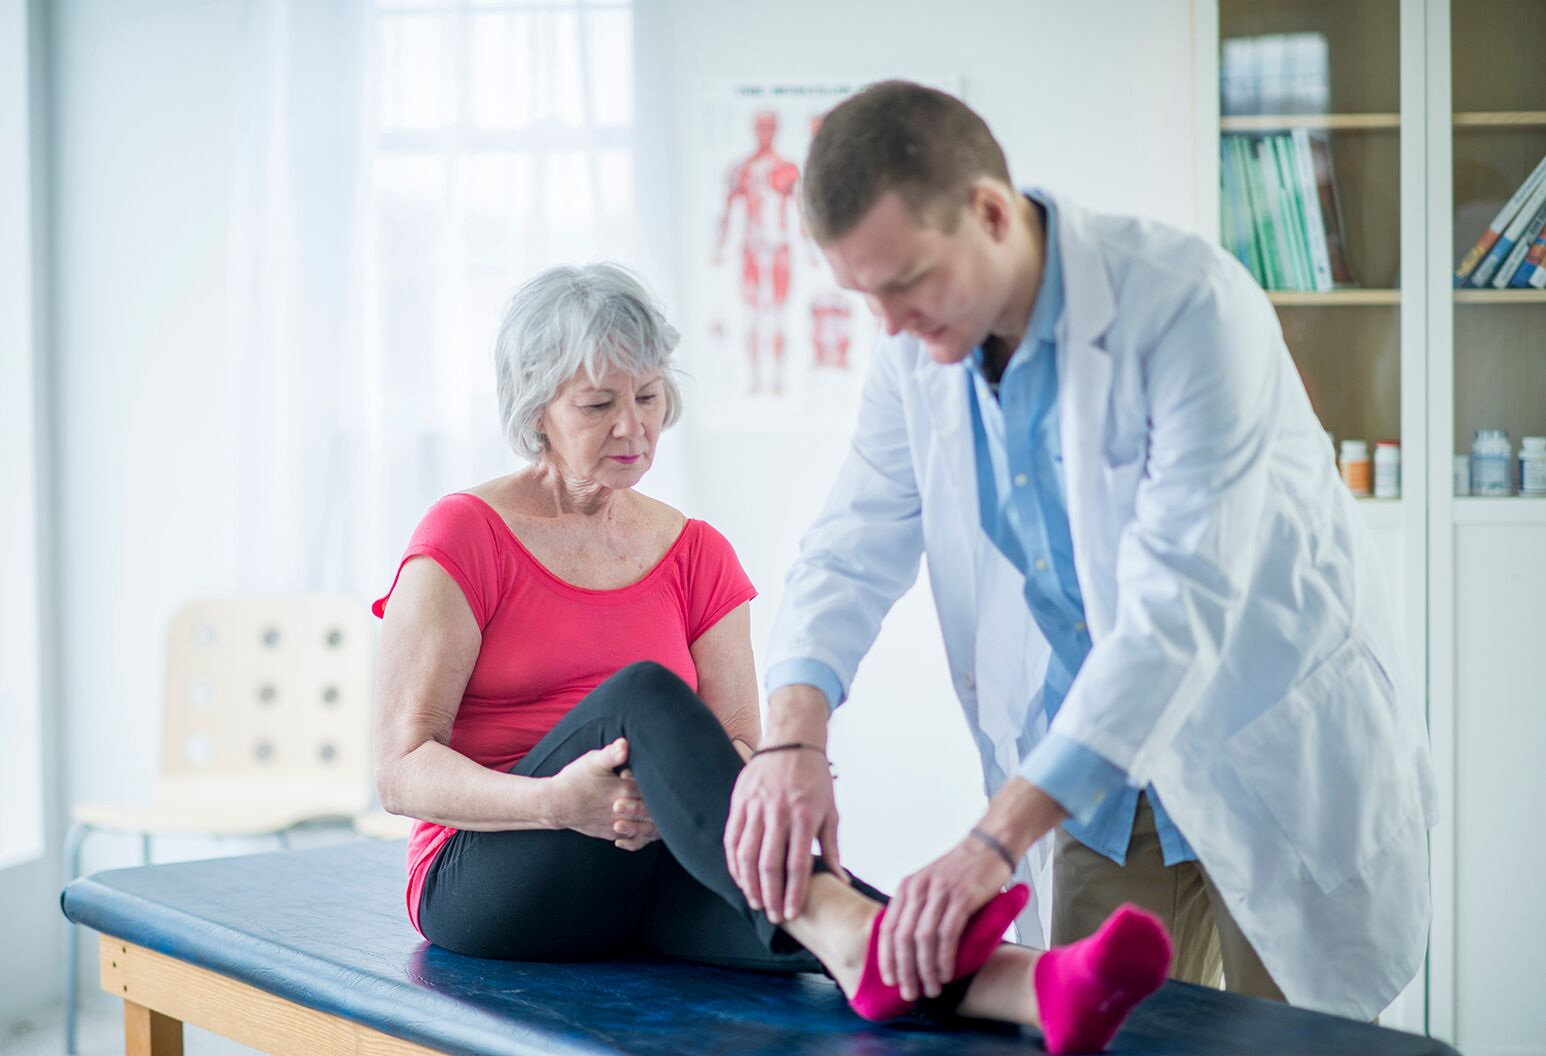 Physician examining patients ankle